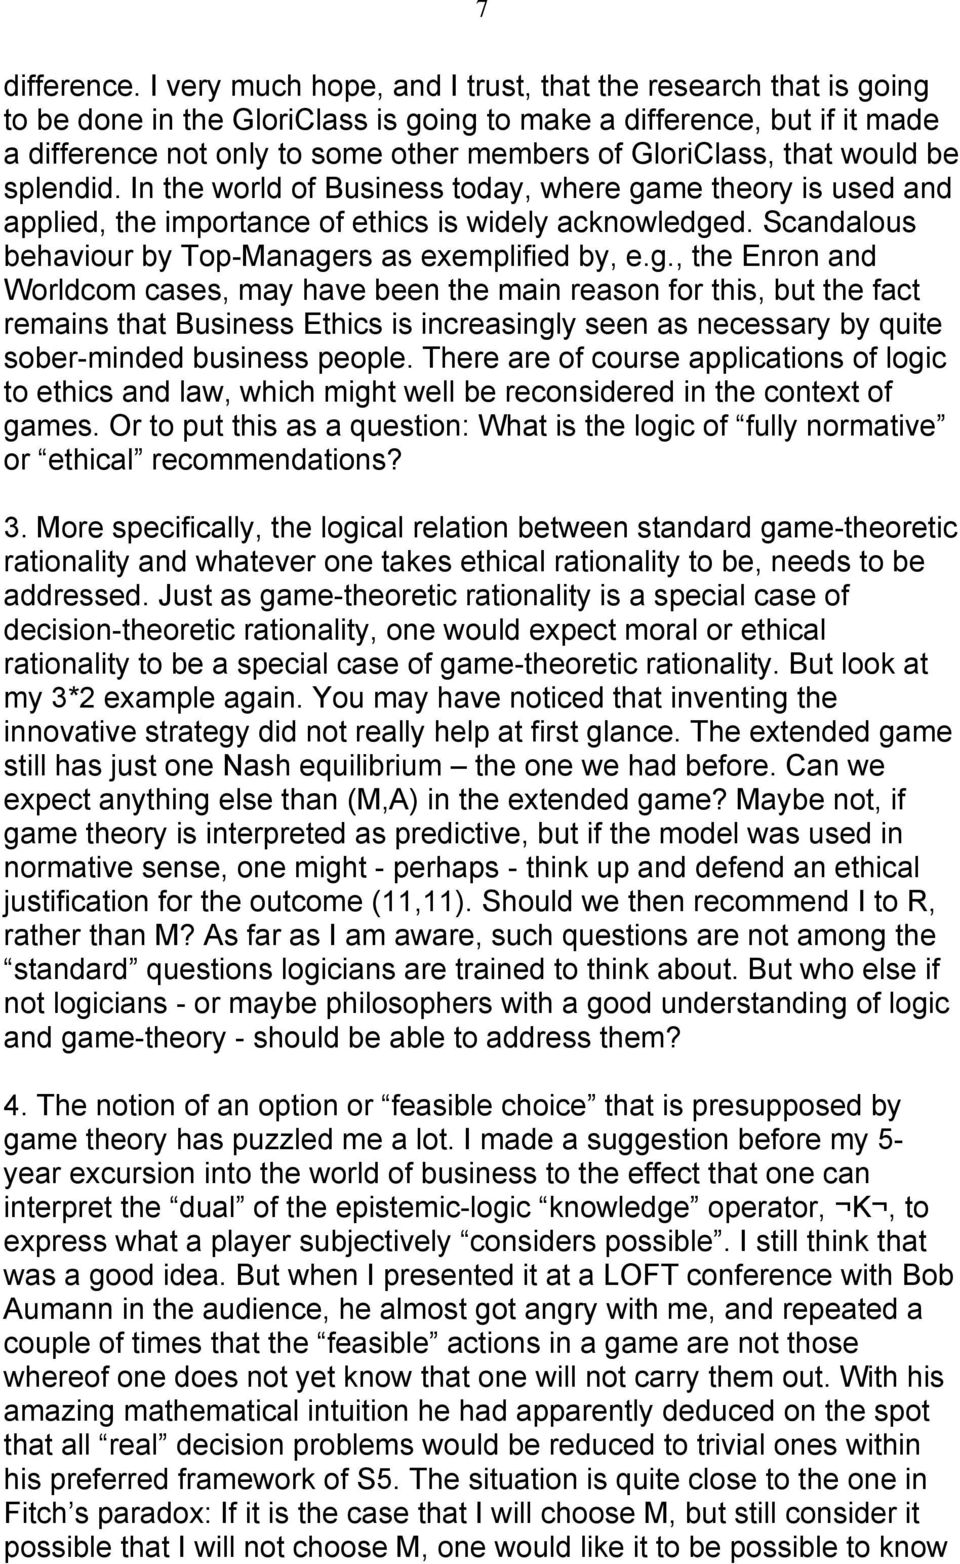 that would be splendid. In the world of Business today, where game theory is used and applied, the importance of ethics is widely acknowledged.